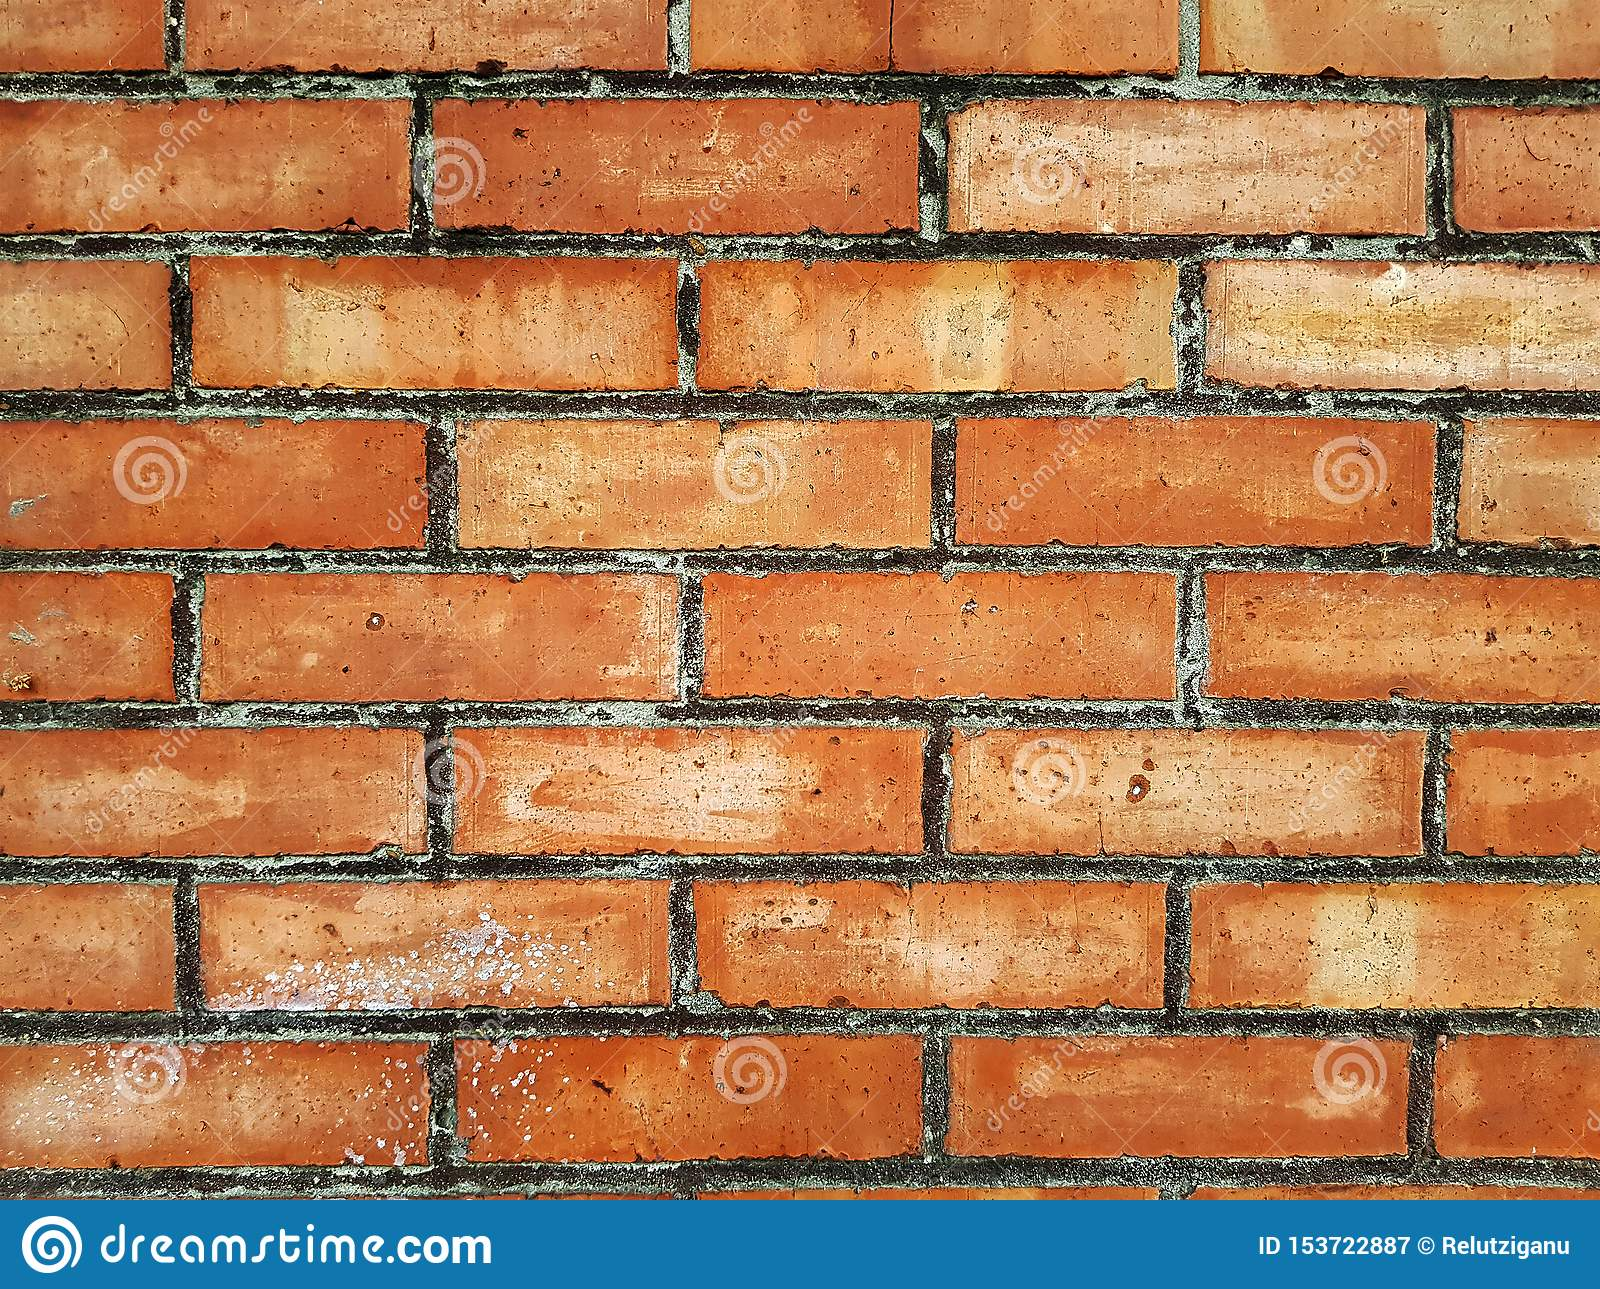 The brick wall of red color, wide panorama of masonry. Background of old vintage brick wall